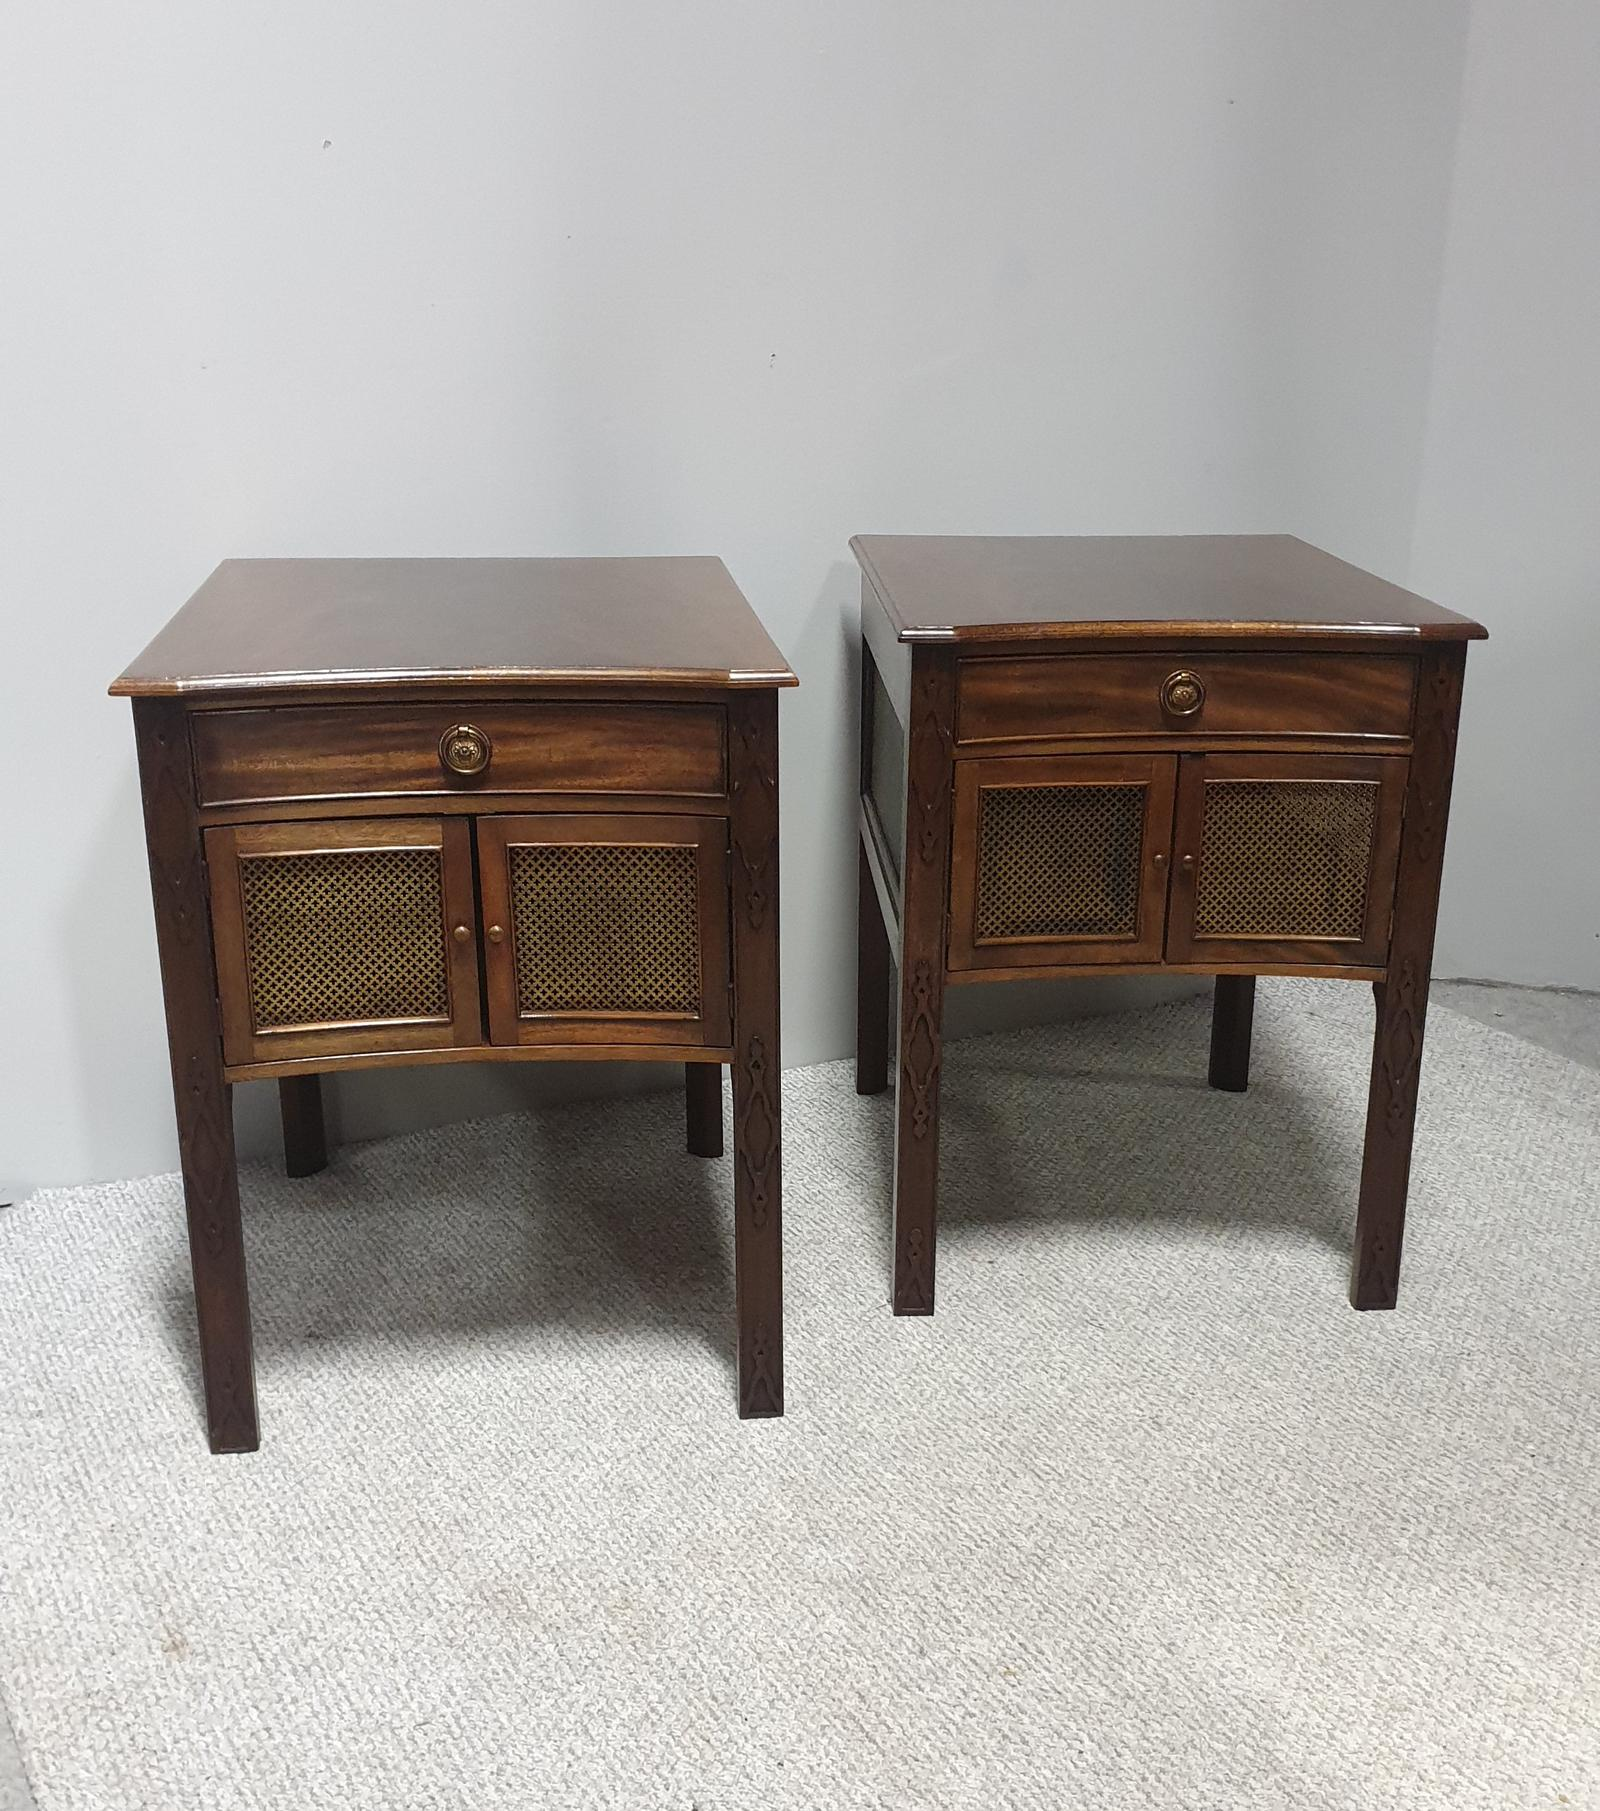 Very Good Pair of Mahogany Bedside Cabinets (1 of 1)